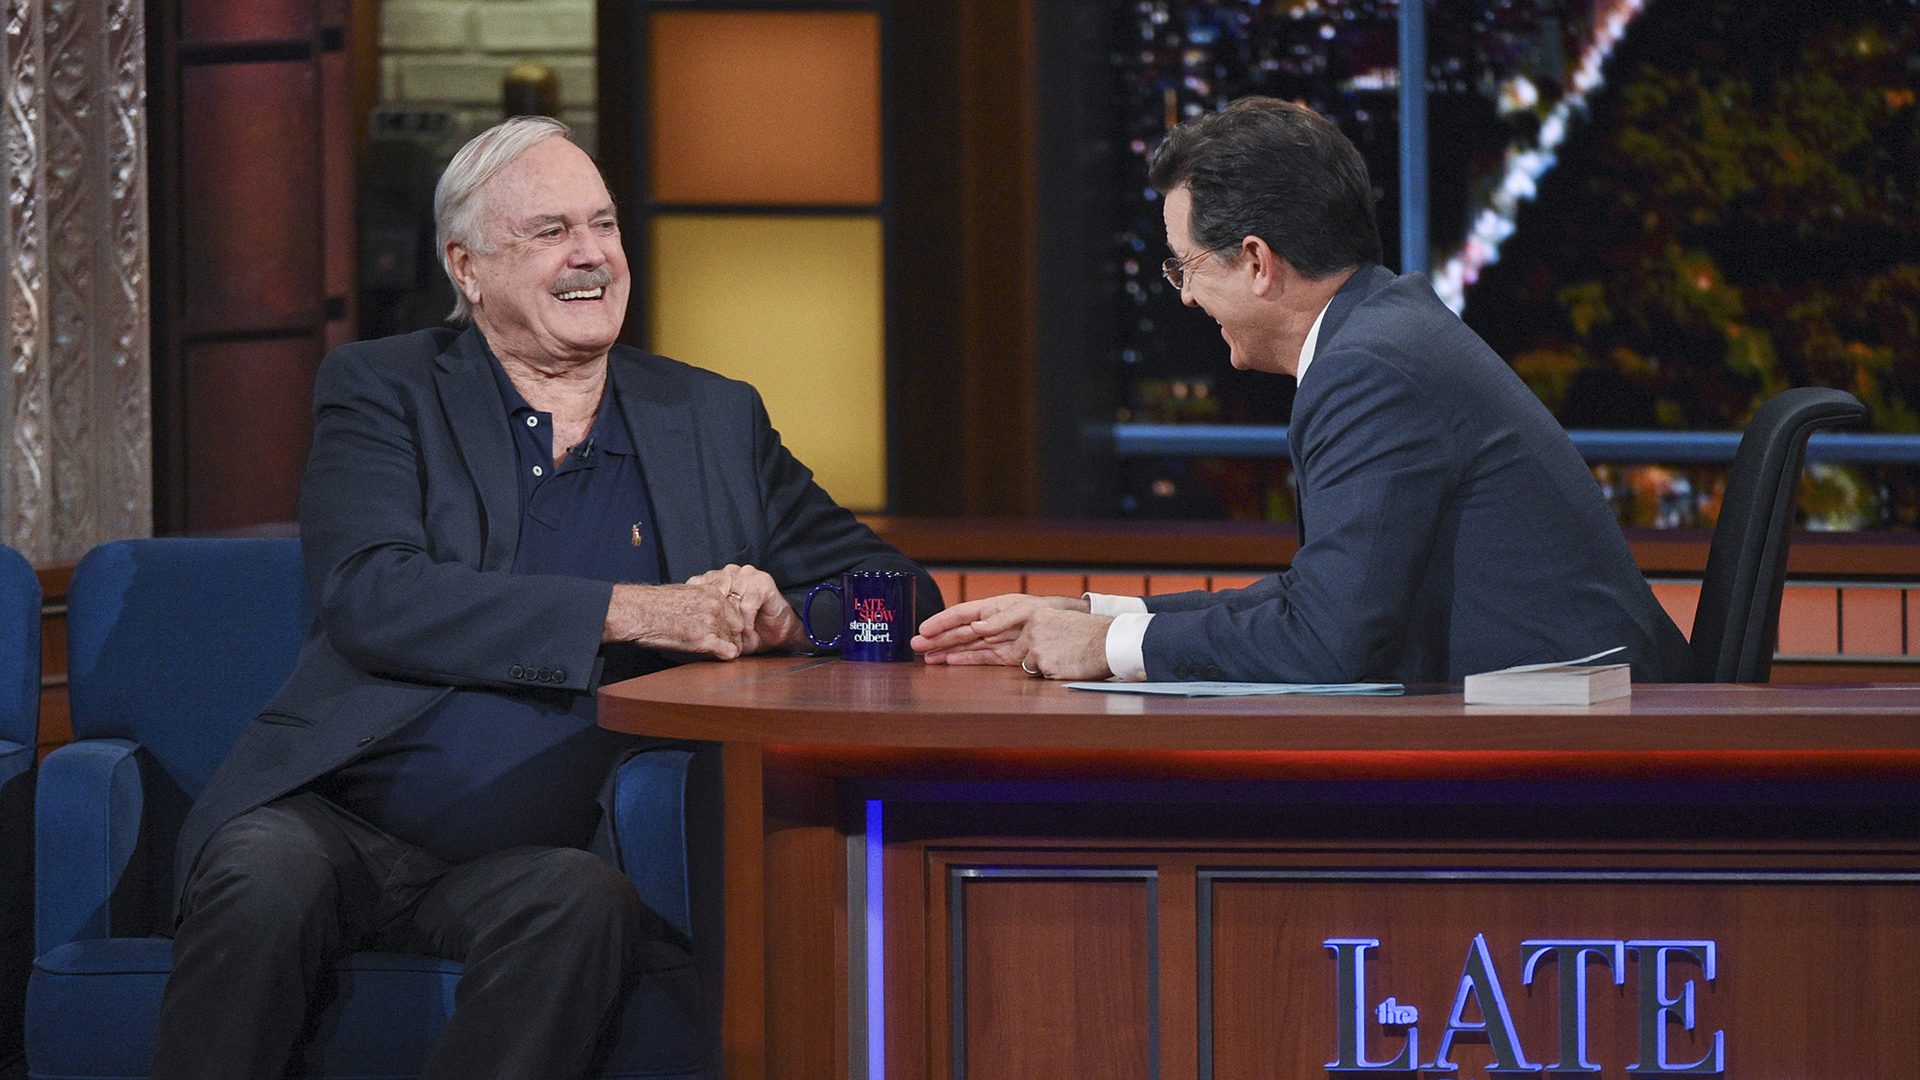 John Cleese and Stephen Colbert